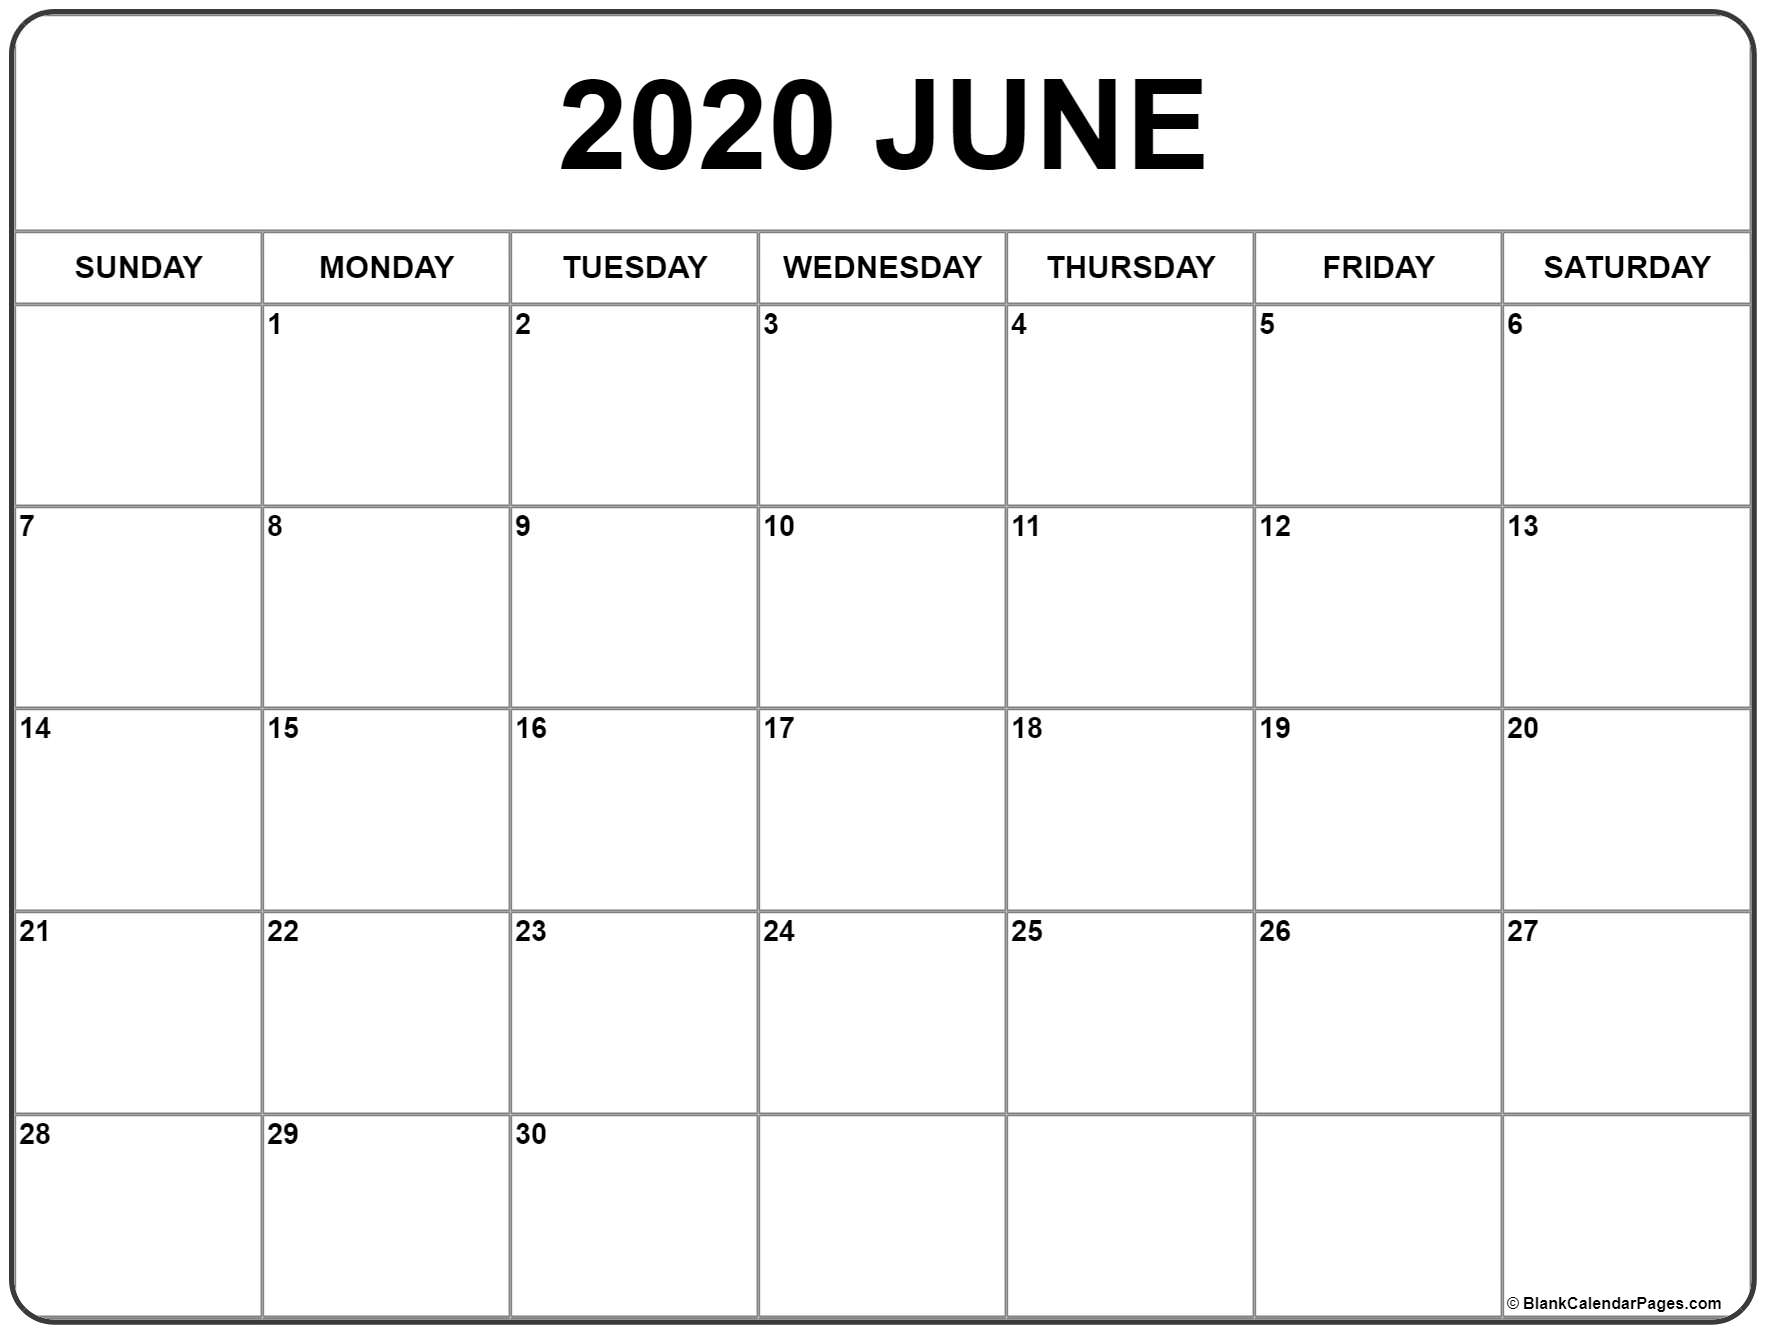 June 2020 Calendar | Free Printable Monthly Calendars throughout 2020 Calender With Space To Write